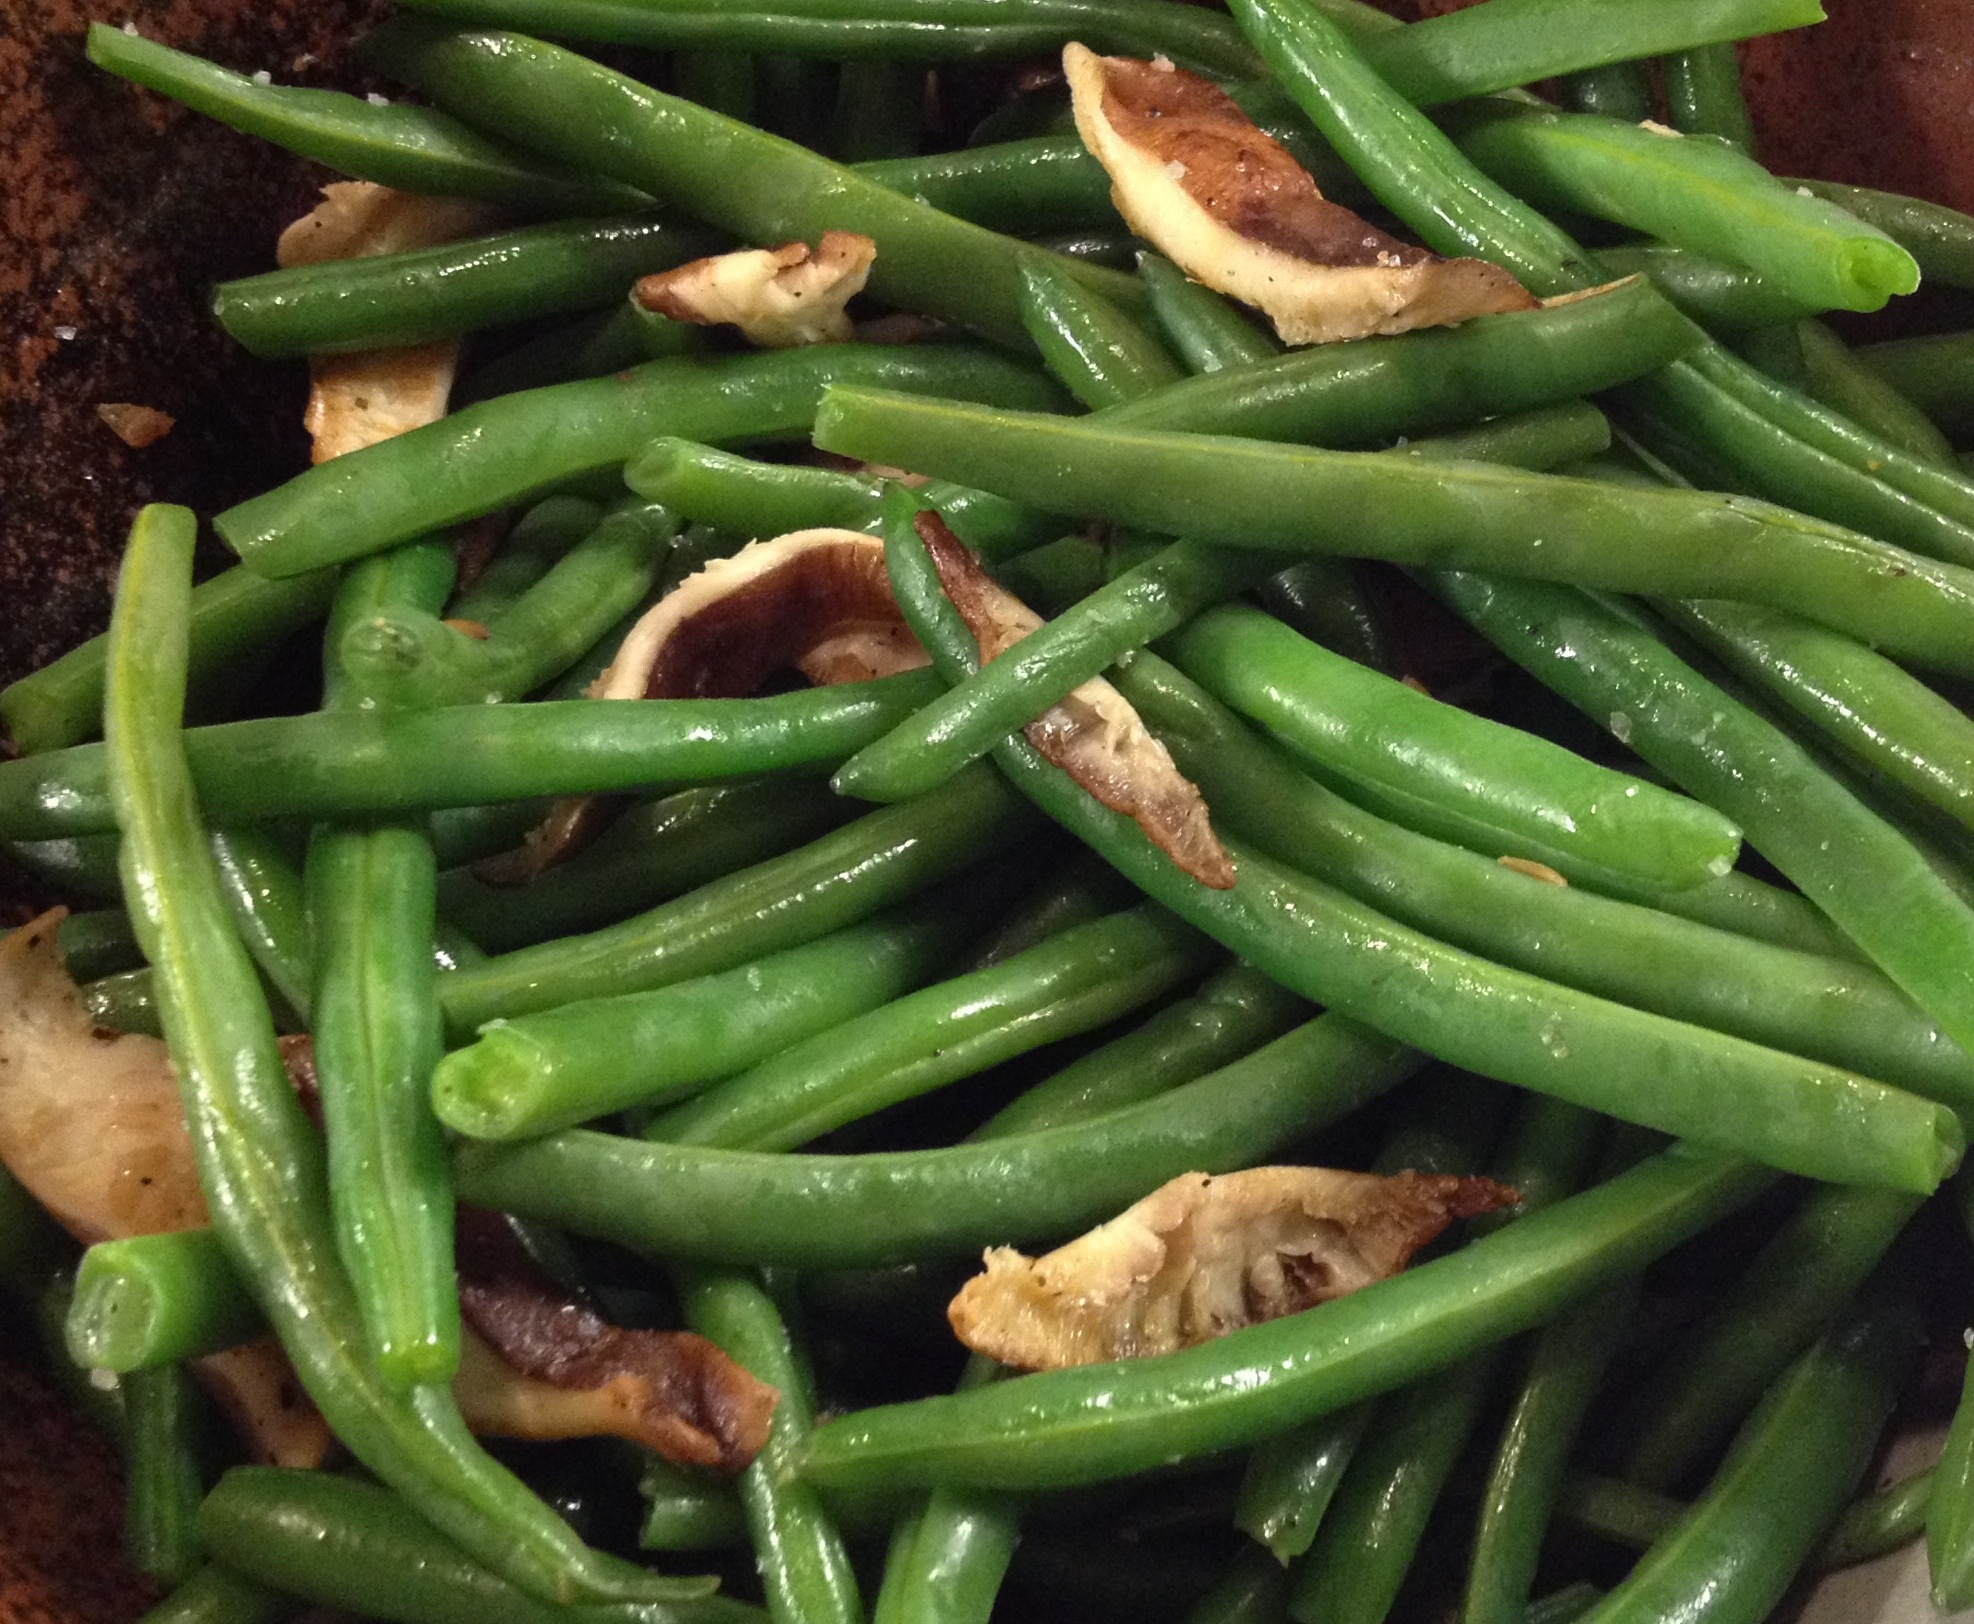 Green beans with shittake mushrooms.